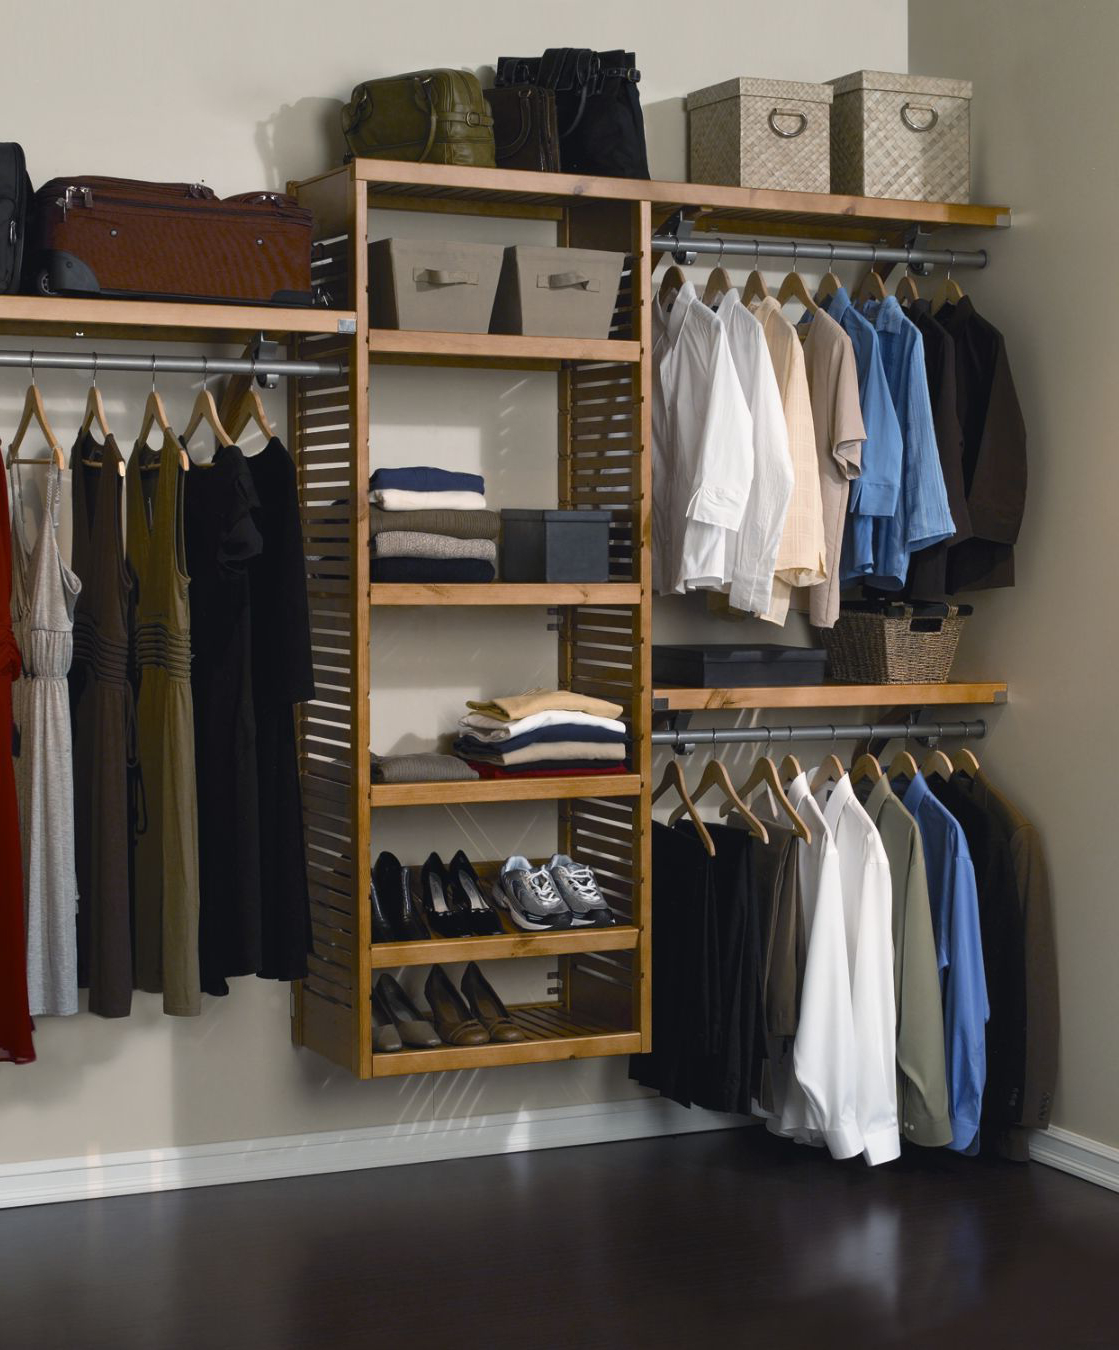 DIY Wooden Closet Shelving (Image 2 of 4)